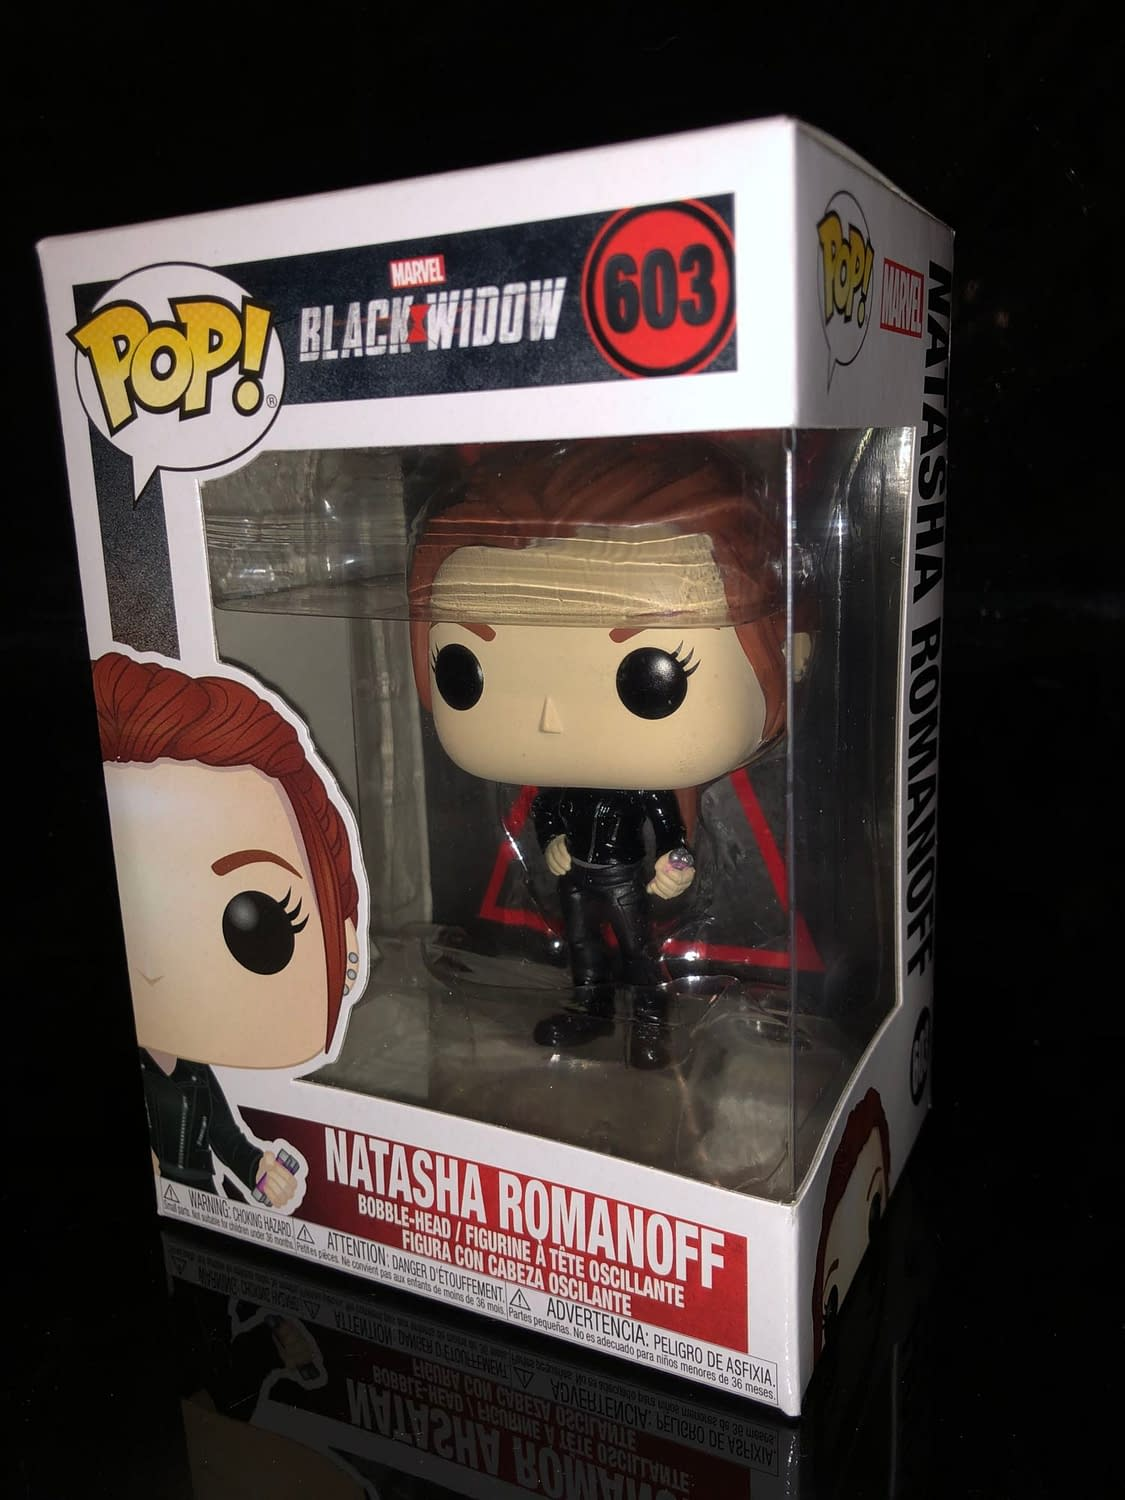 Black Widow Gets Her Own Line of Funko Pops [Review]